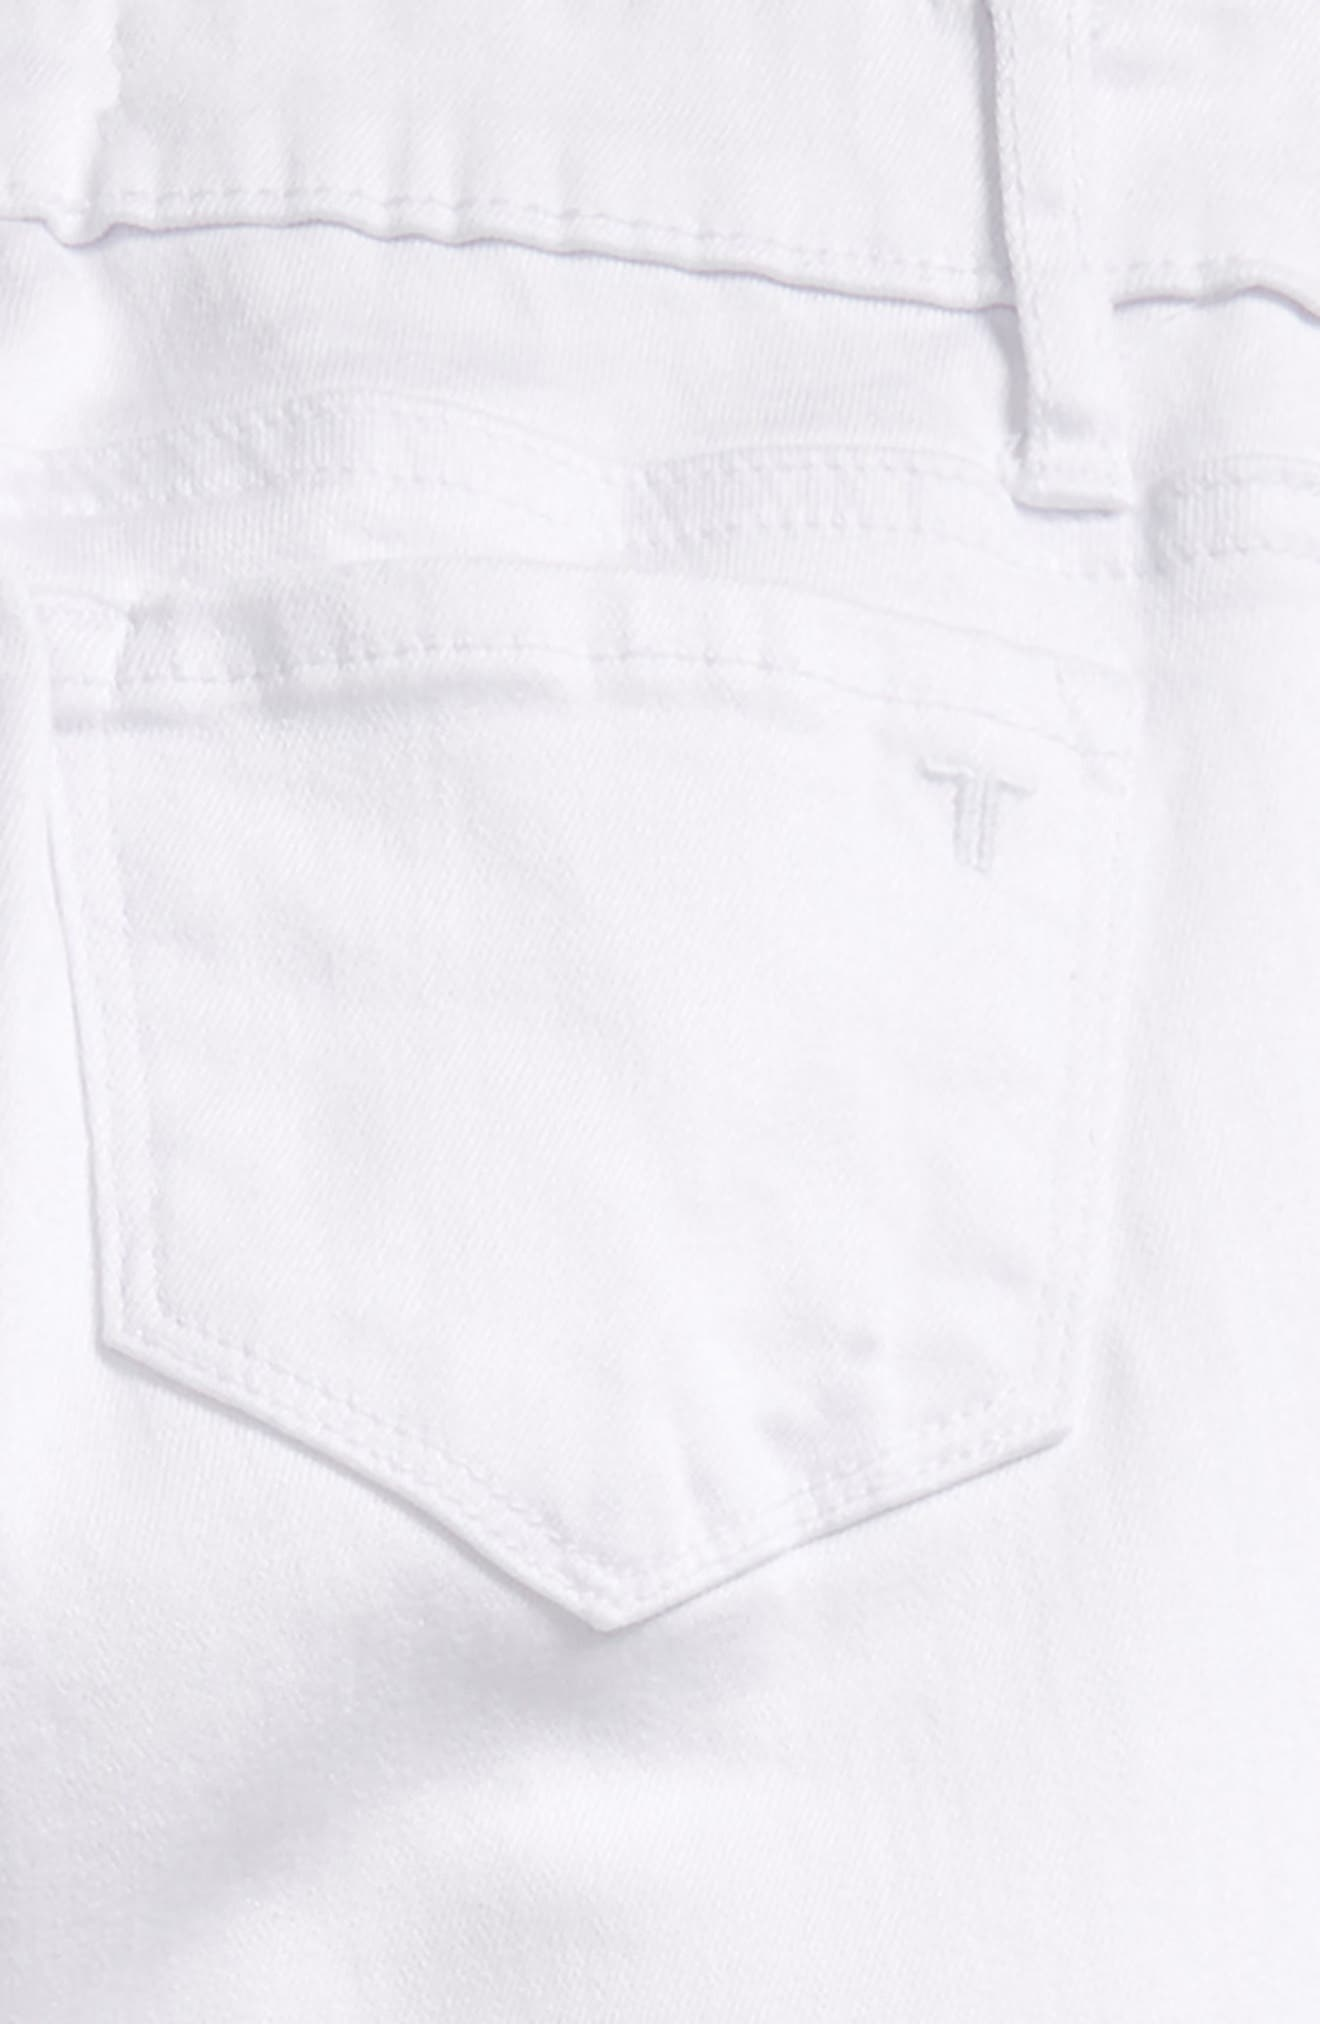 Deconstructed Skinny Jeans,                             Alternate thumbnail 3, color,                             White